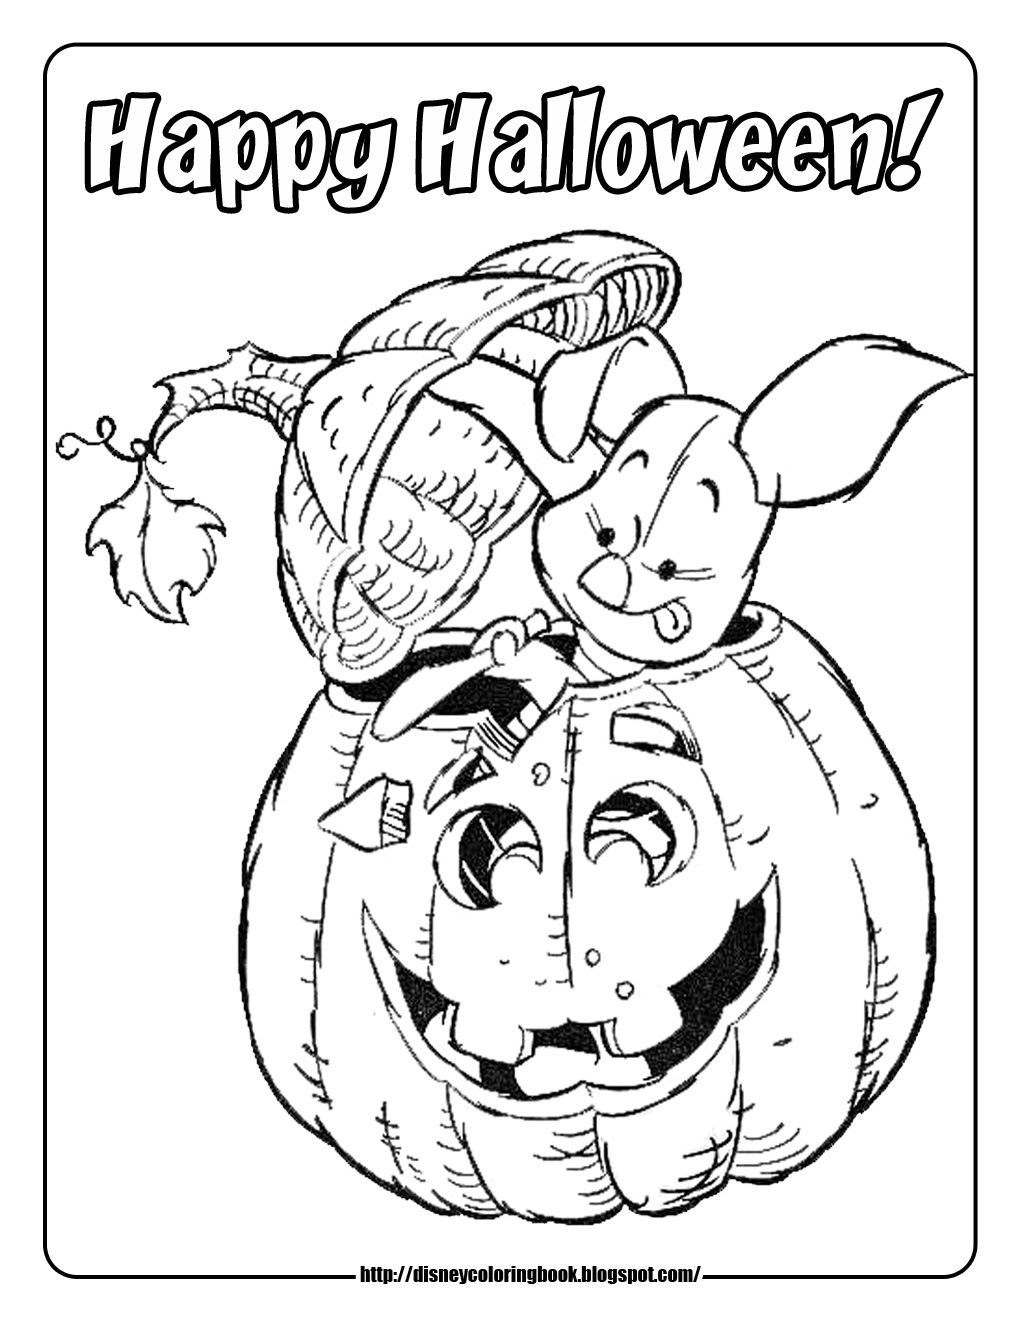 Coloring Pages Snoopy Halloween Coloring Pages 1000 images about halloween color pages on pinterest coloring sheets happy and charlie brown halloween